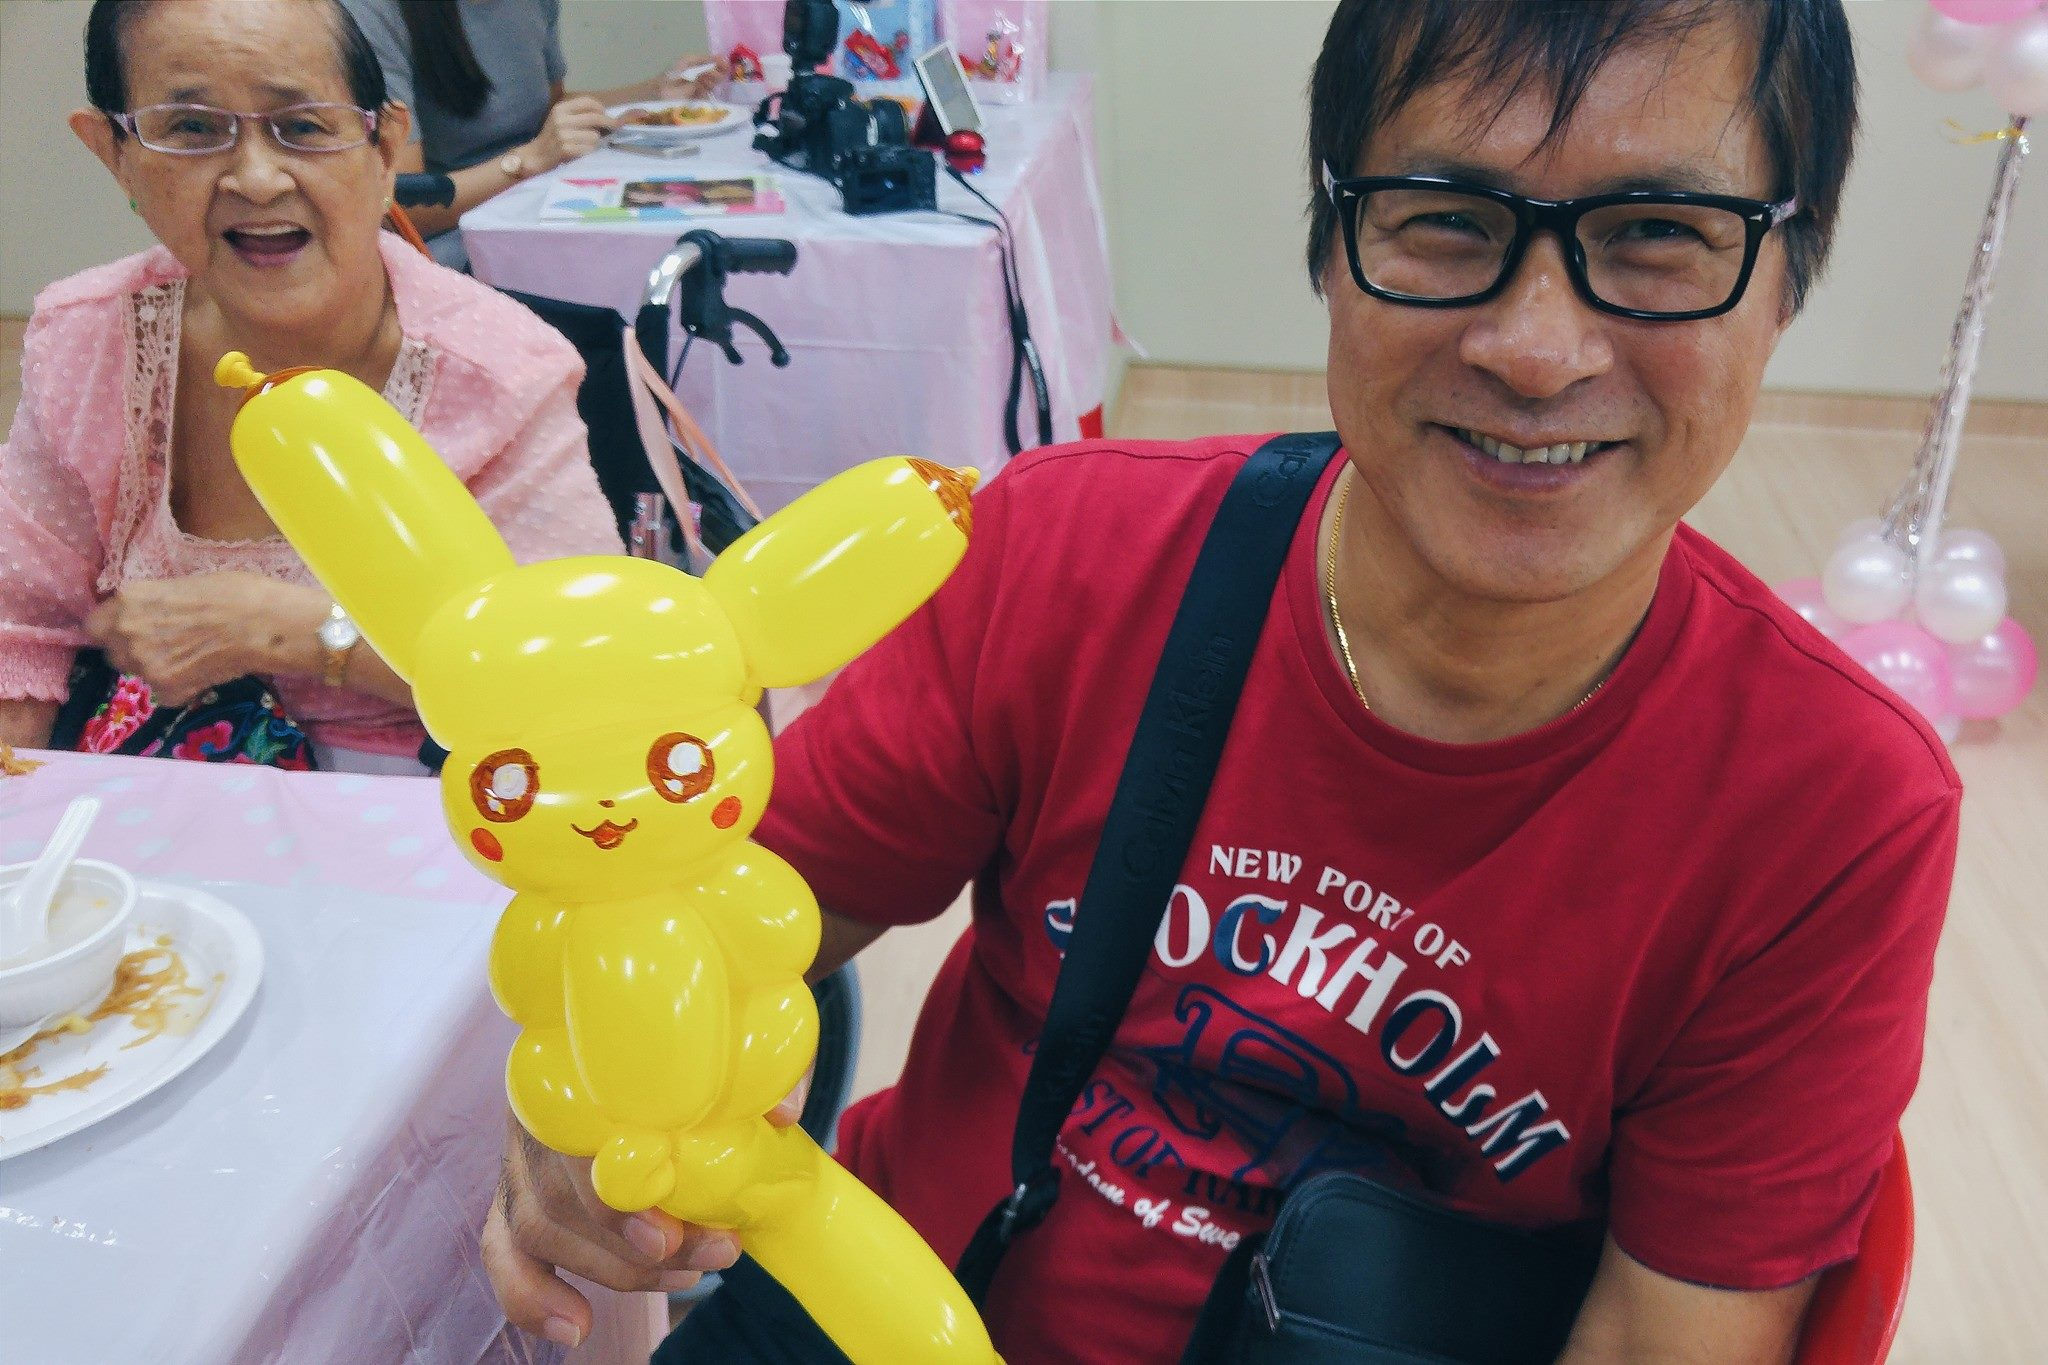 Pikachu balloon art, sculpture!